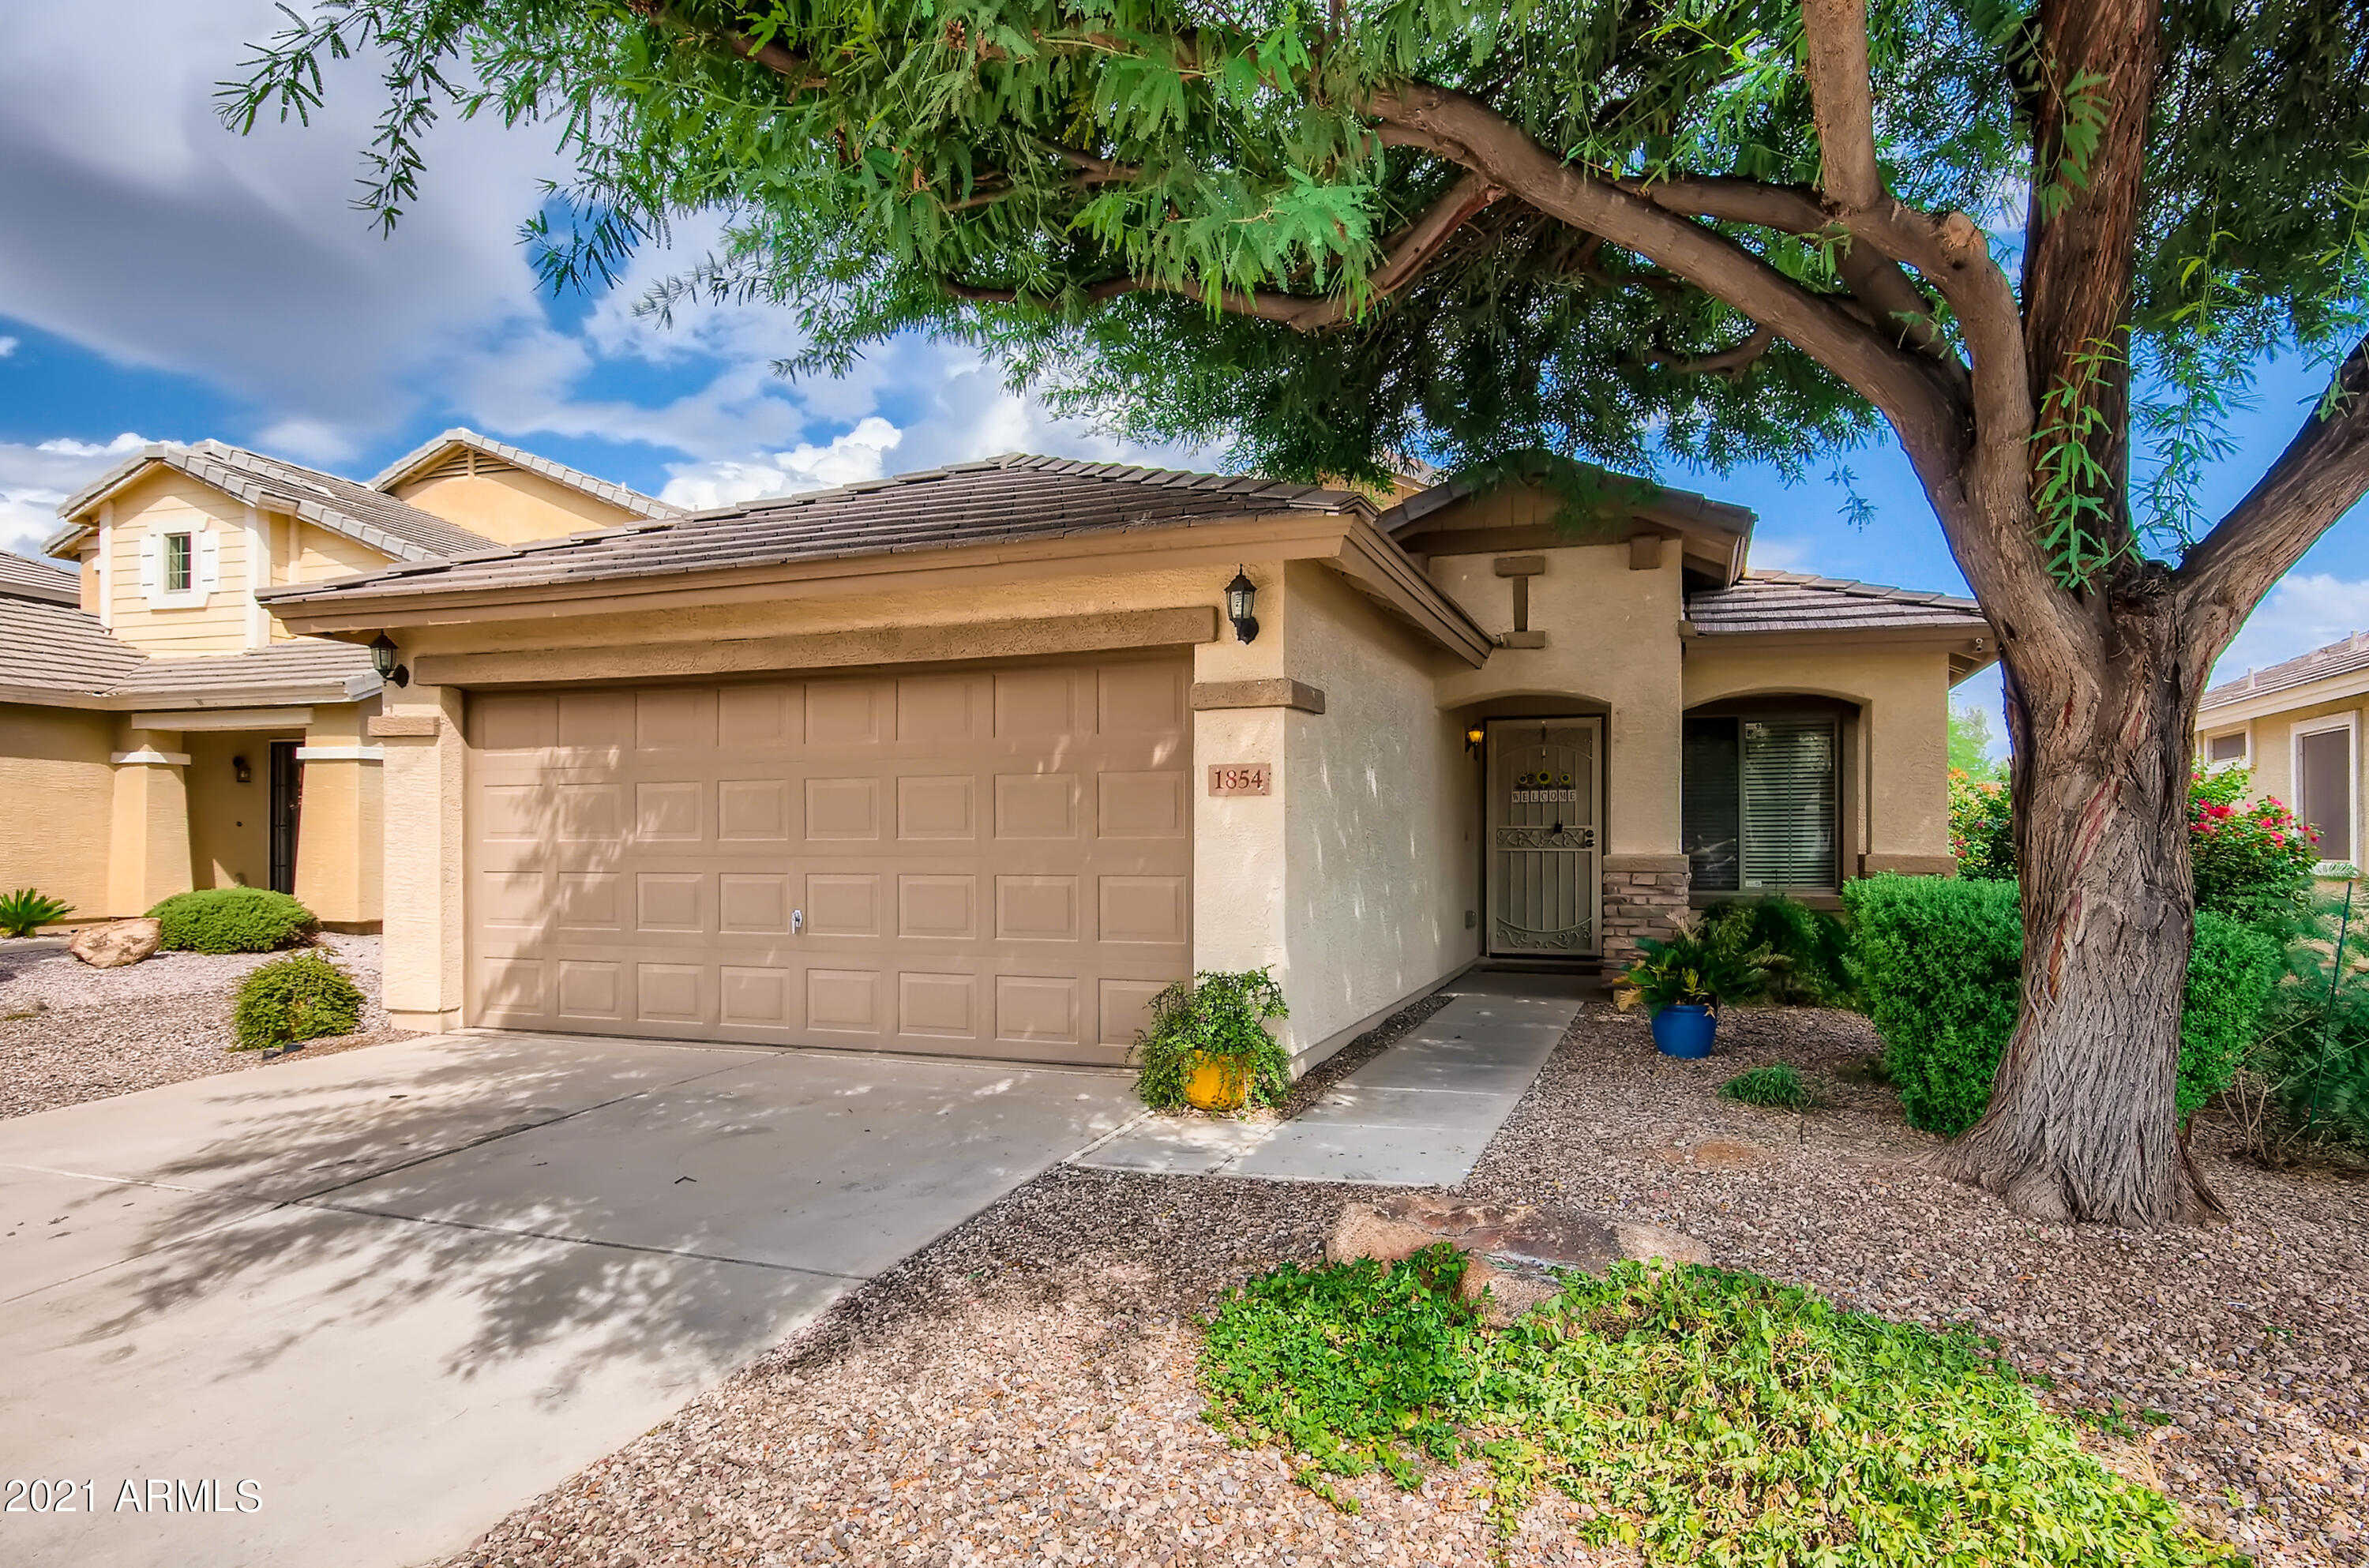 $319,300 - 3Br/2Ba - Home for Sale in Morning Sun Farms Unit 3, Queen Creek